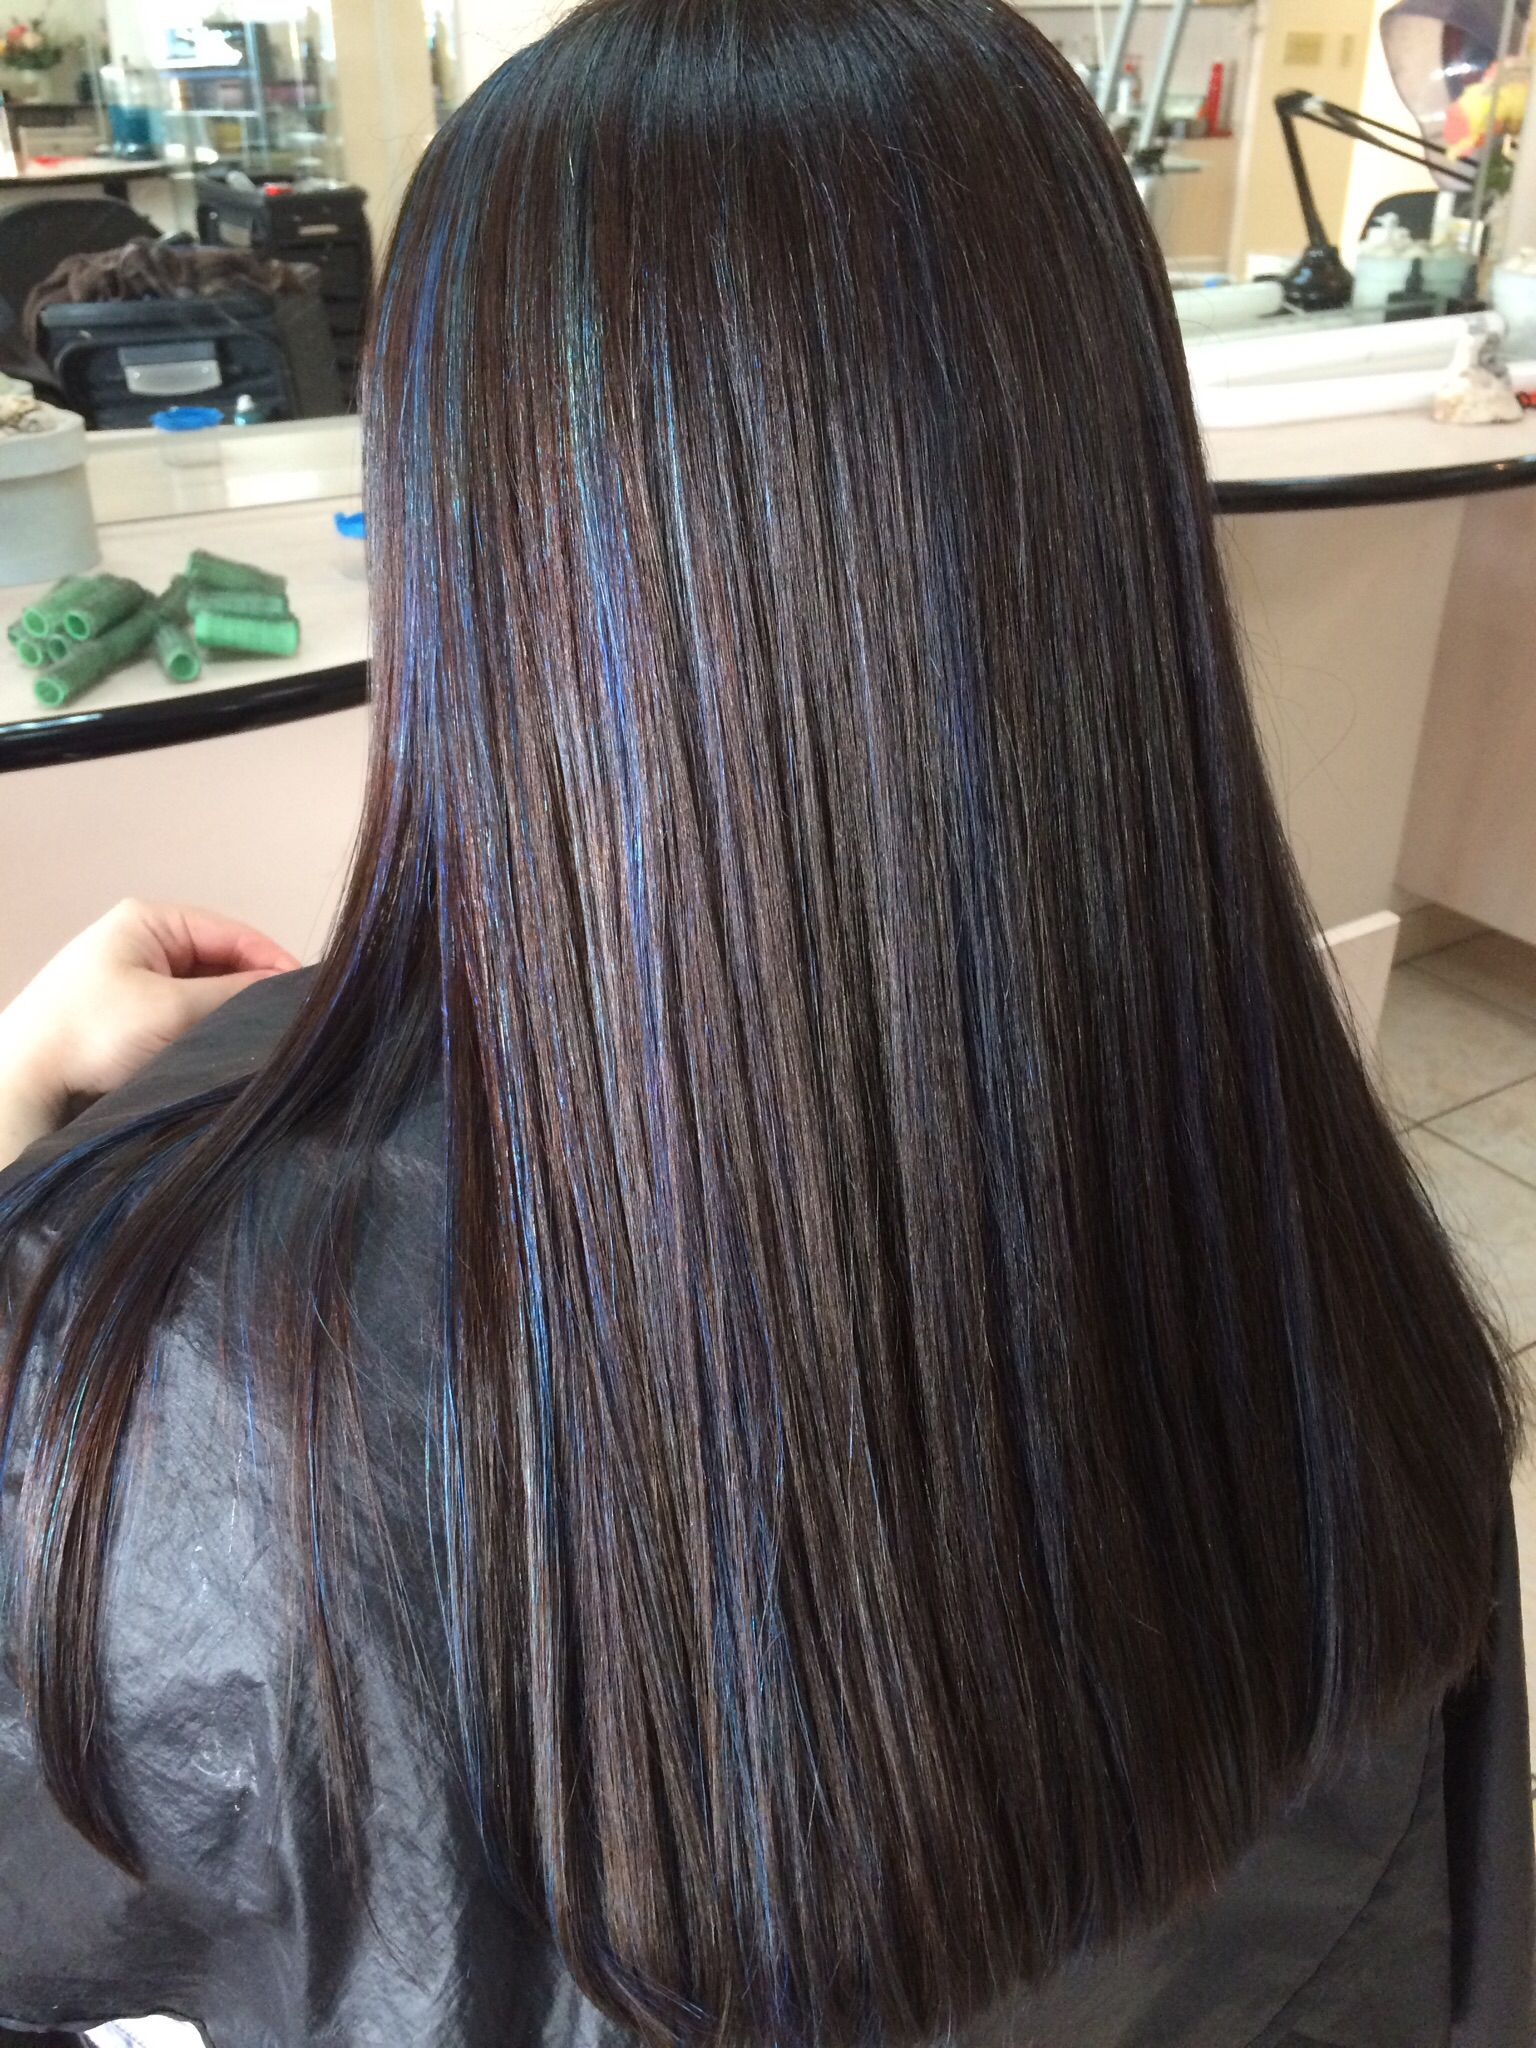 Dark Brown Hair With Blue Highlights Blue Hair Highlights Brown Hair Blue Highlights Hair Color Streaks